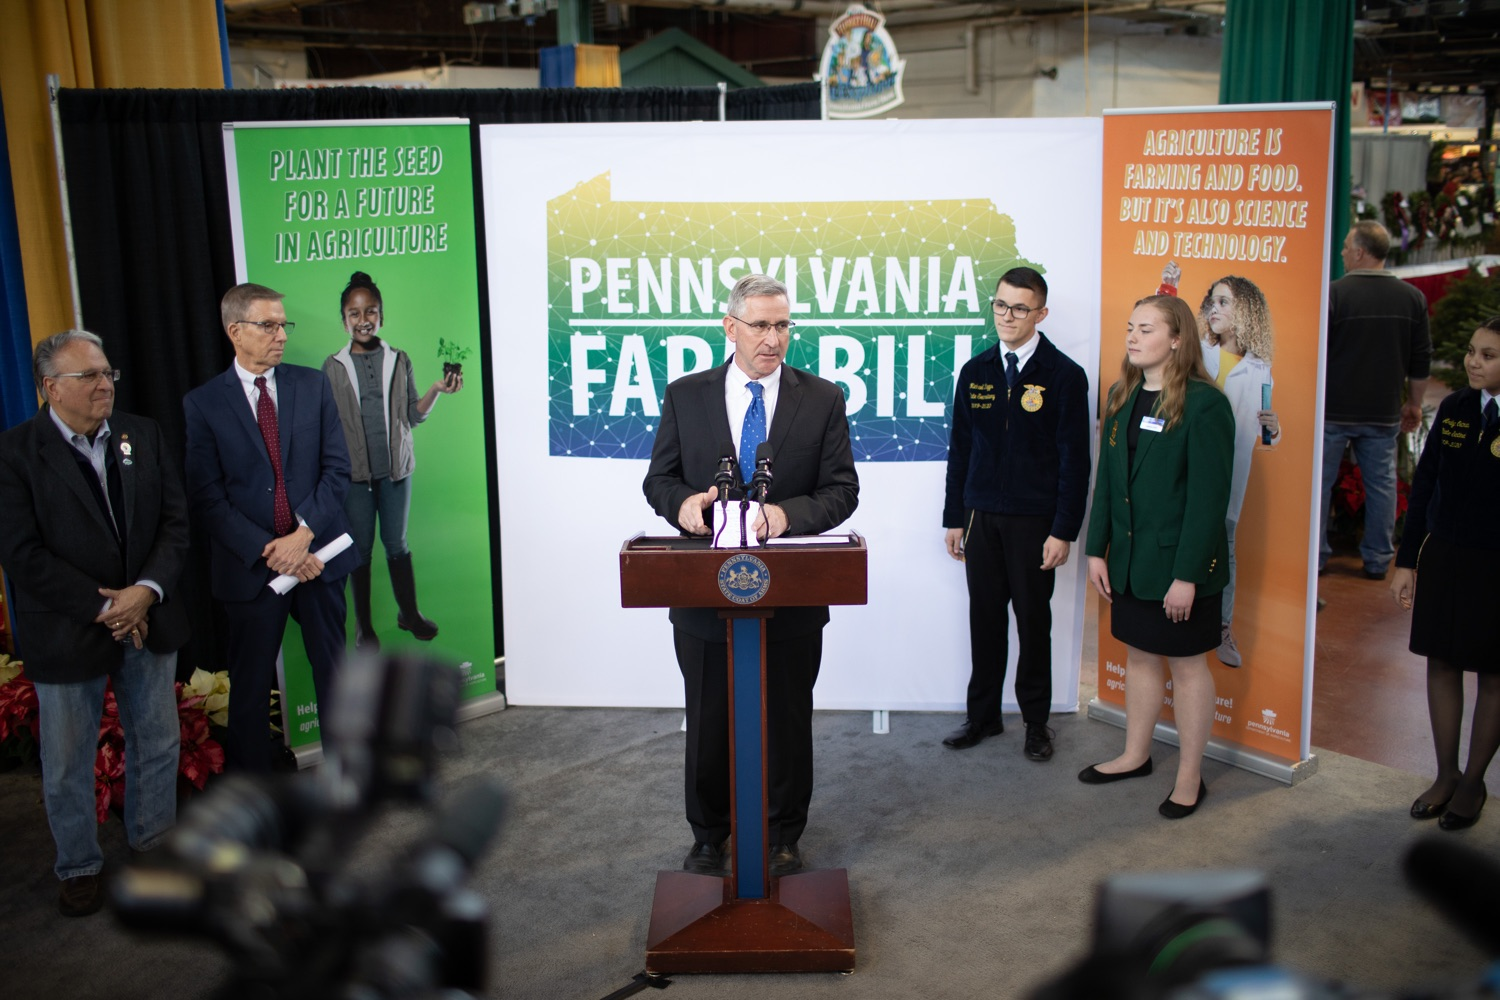 "<a href=""https://filesource.wostreaming.net/commonwealthofpa/photo/17649_agric_youth_grant_farm_bill_dz_002.jpg"" target=""_blank"">⇣ Download Photo<br></a>Agriculture Secretary Russell Redding speaking at the announcement. Governor Tom Wolf today announced the approval of $500,000 in Ag and Youth Grants to fund 55 projects that will improve access to agriculture education in the commonwealth, with a goal of addressing the looming 75,000 workforce deficit Pennsylvanias agriculture industry faces in the coming decade. Harrisburg, PA  January 6, 2020"